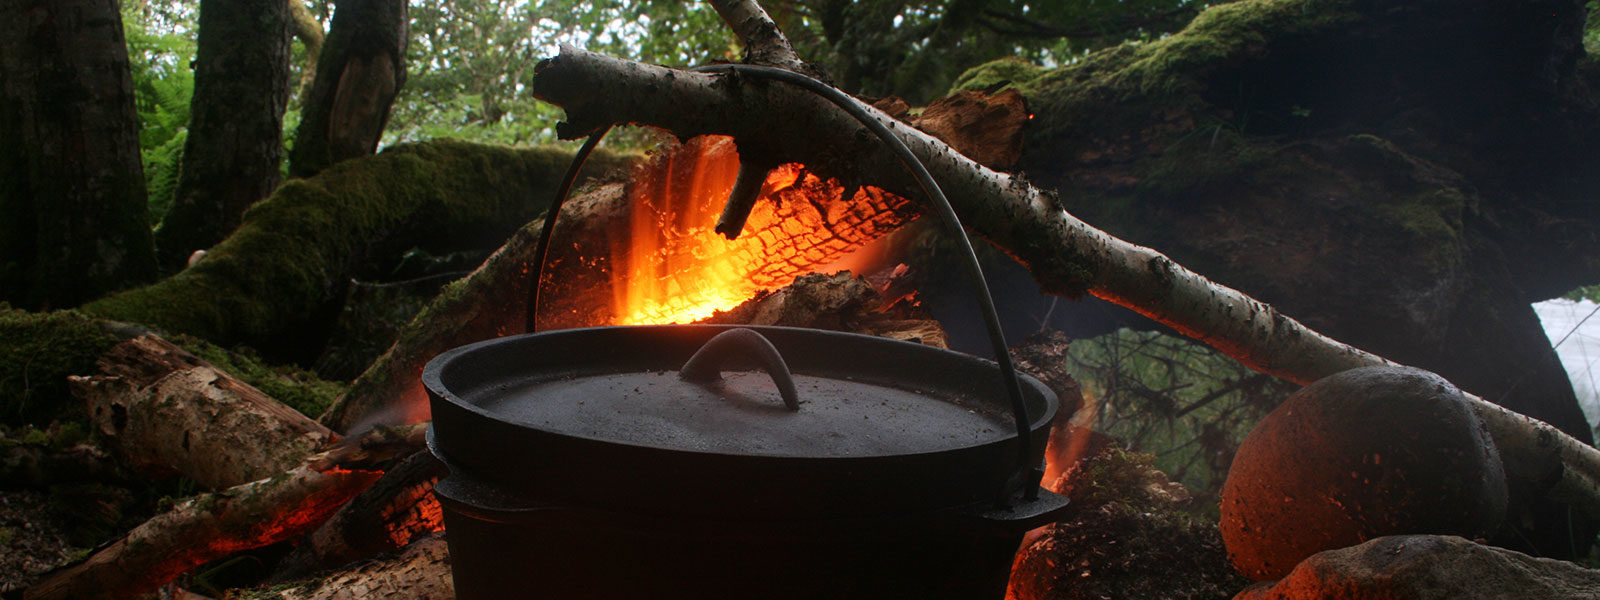 Campfire Cast Iron Pot Cooking, Dutch Oven